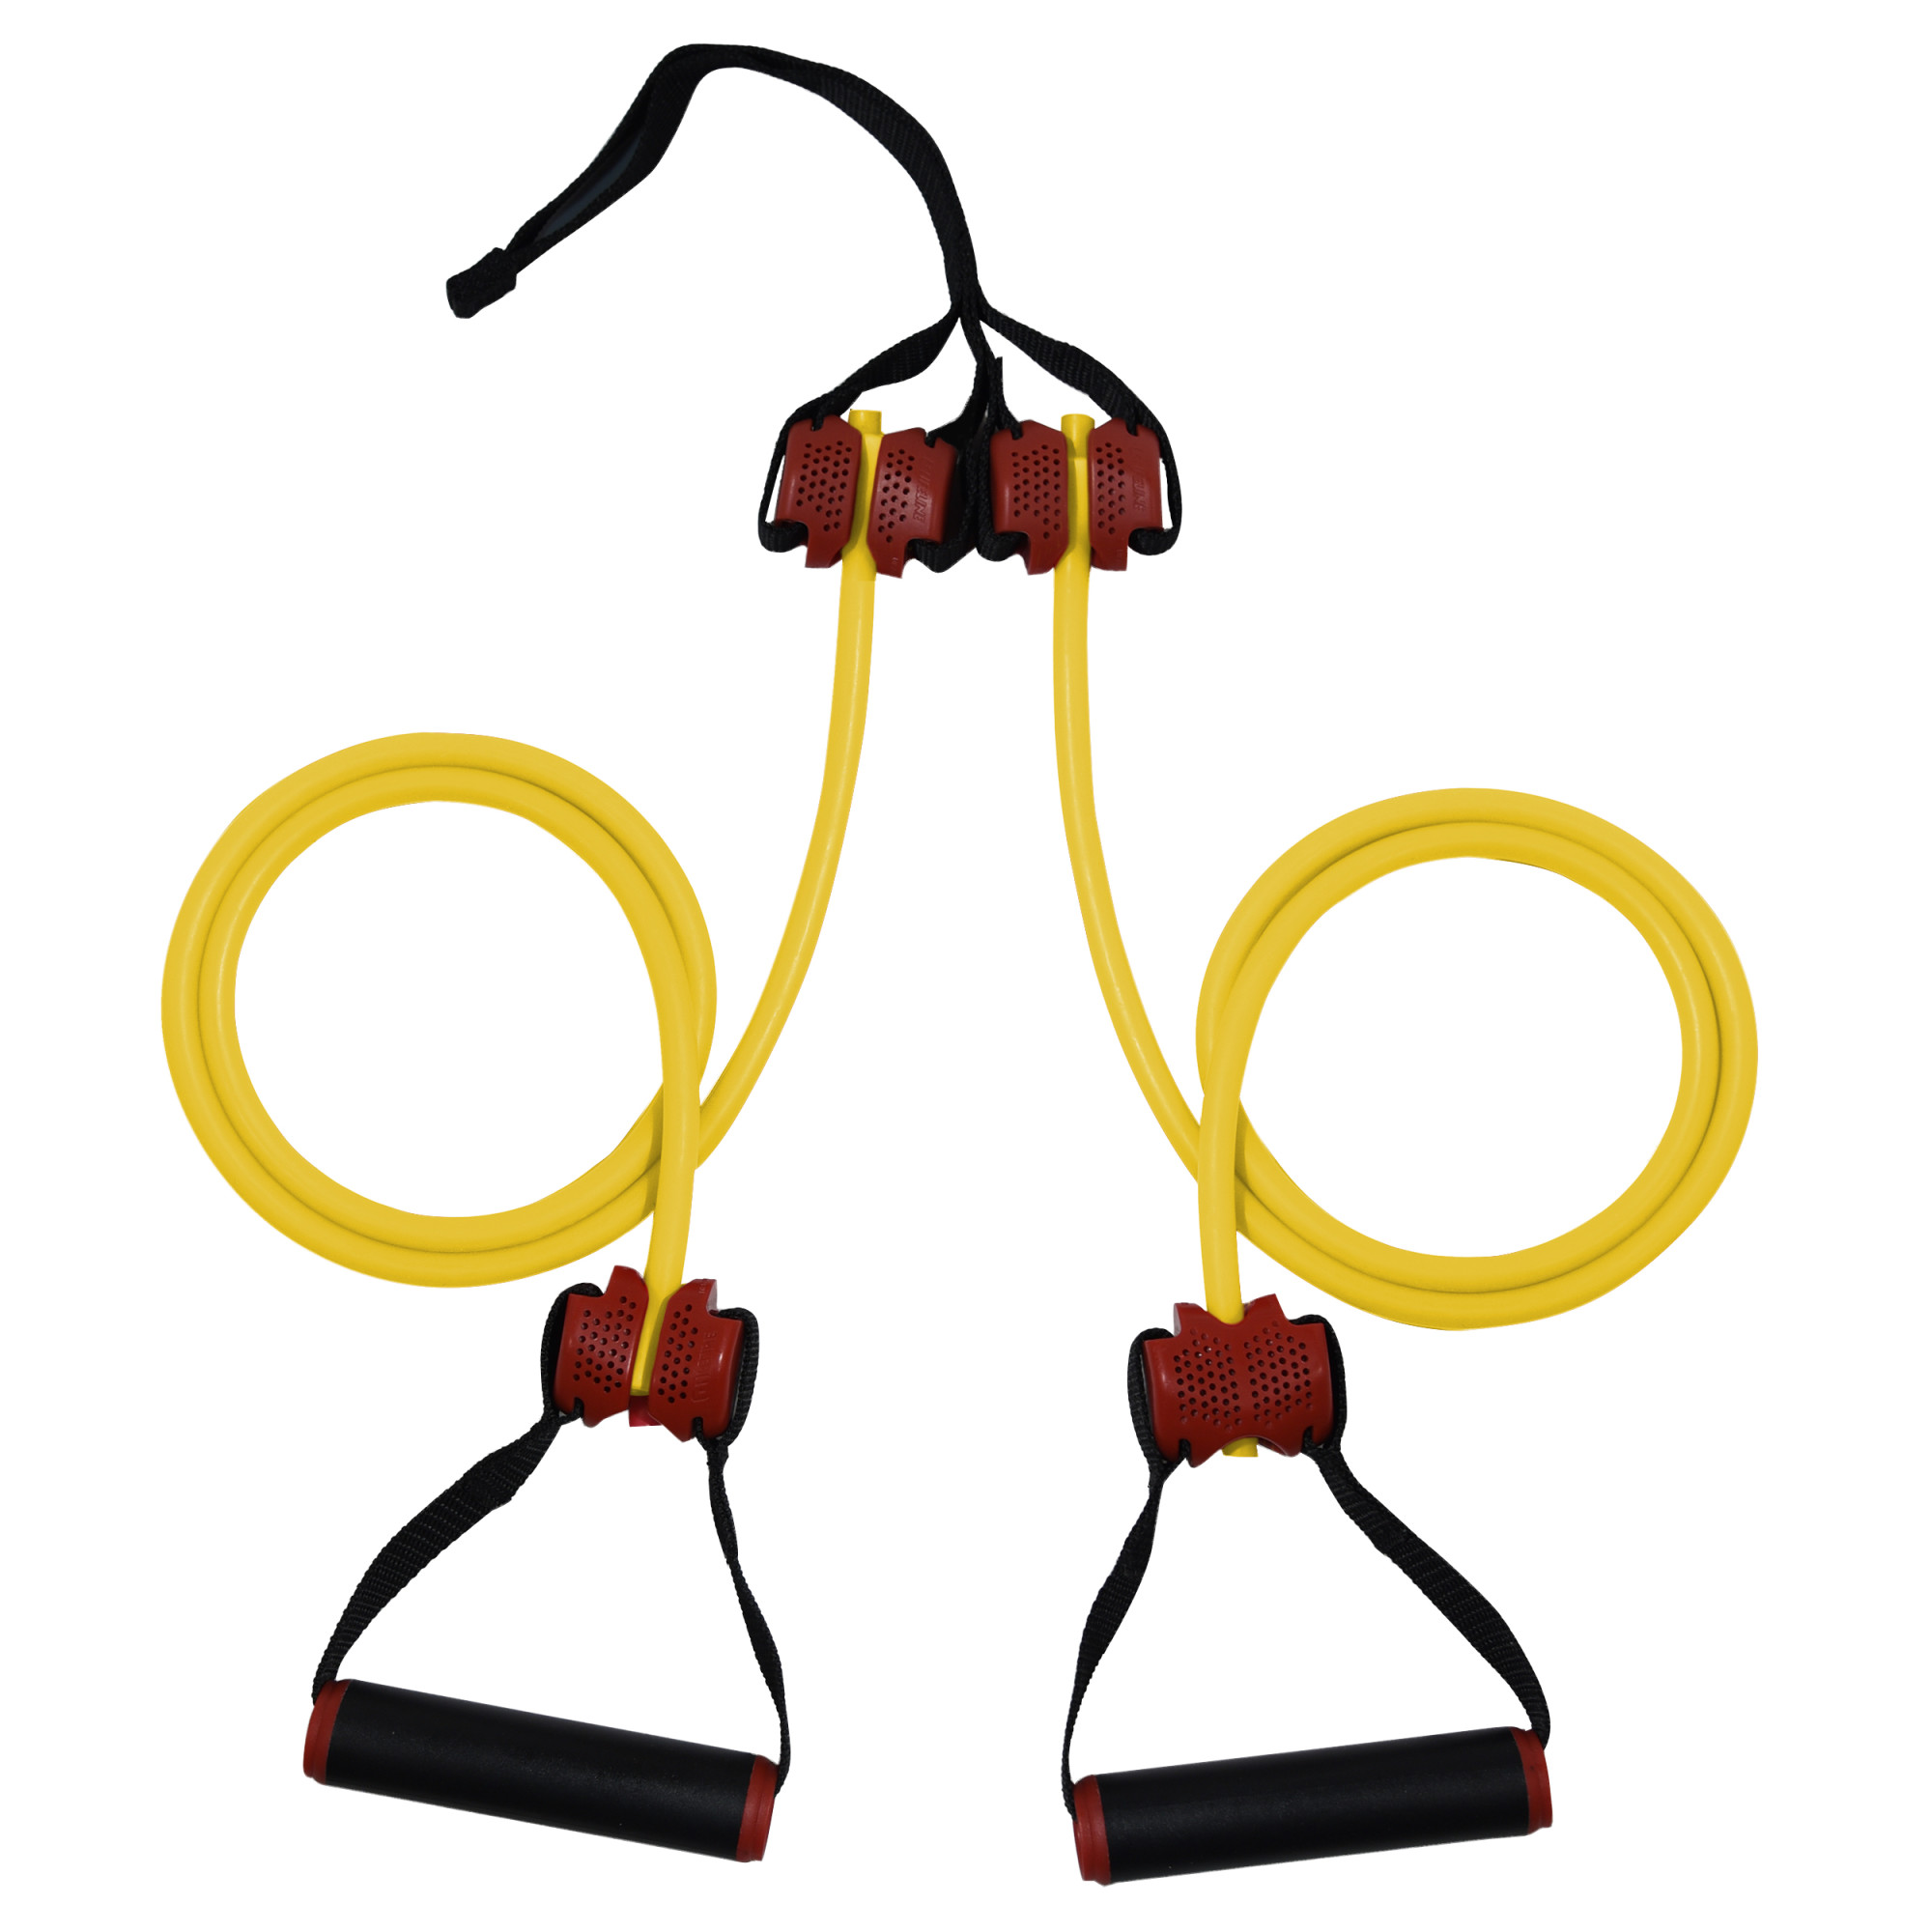 Lifeline Trainer Cable - R10